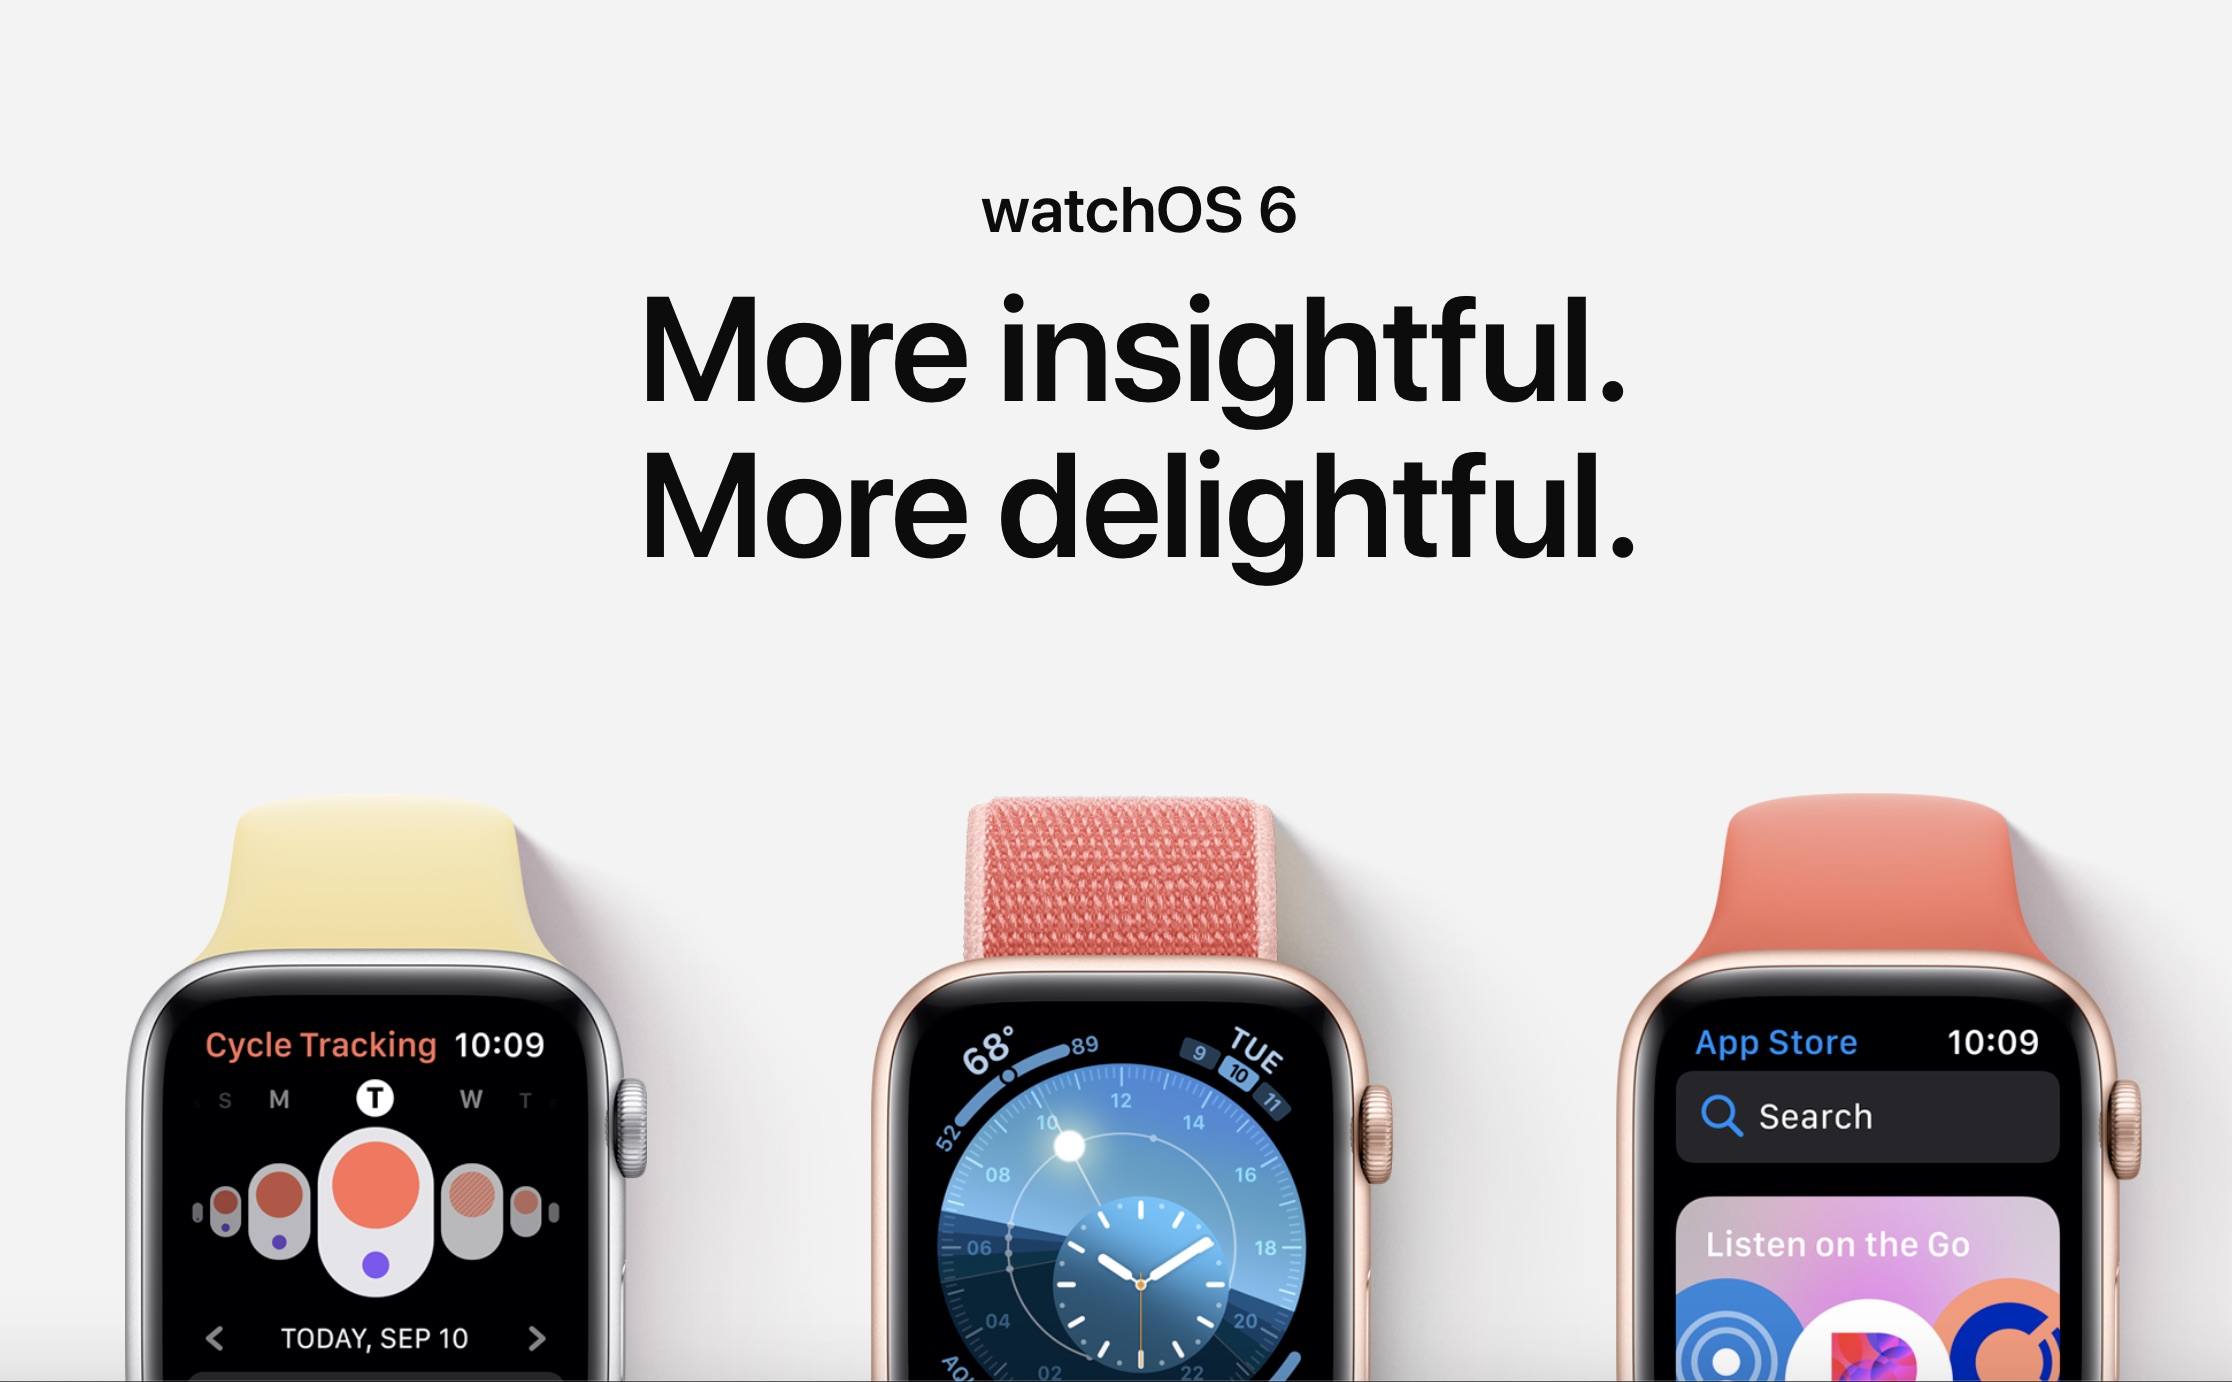 Should you upgrade to watchOS 6?